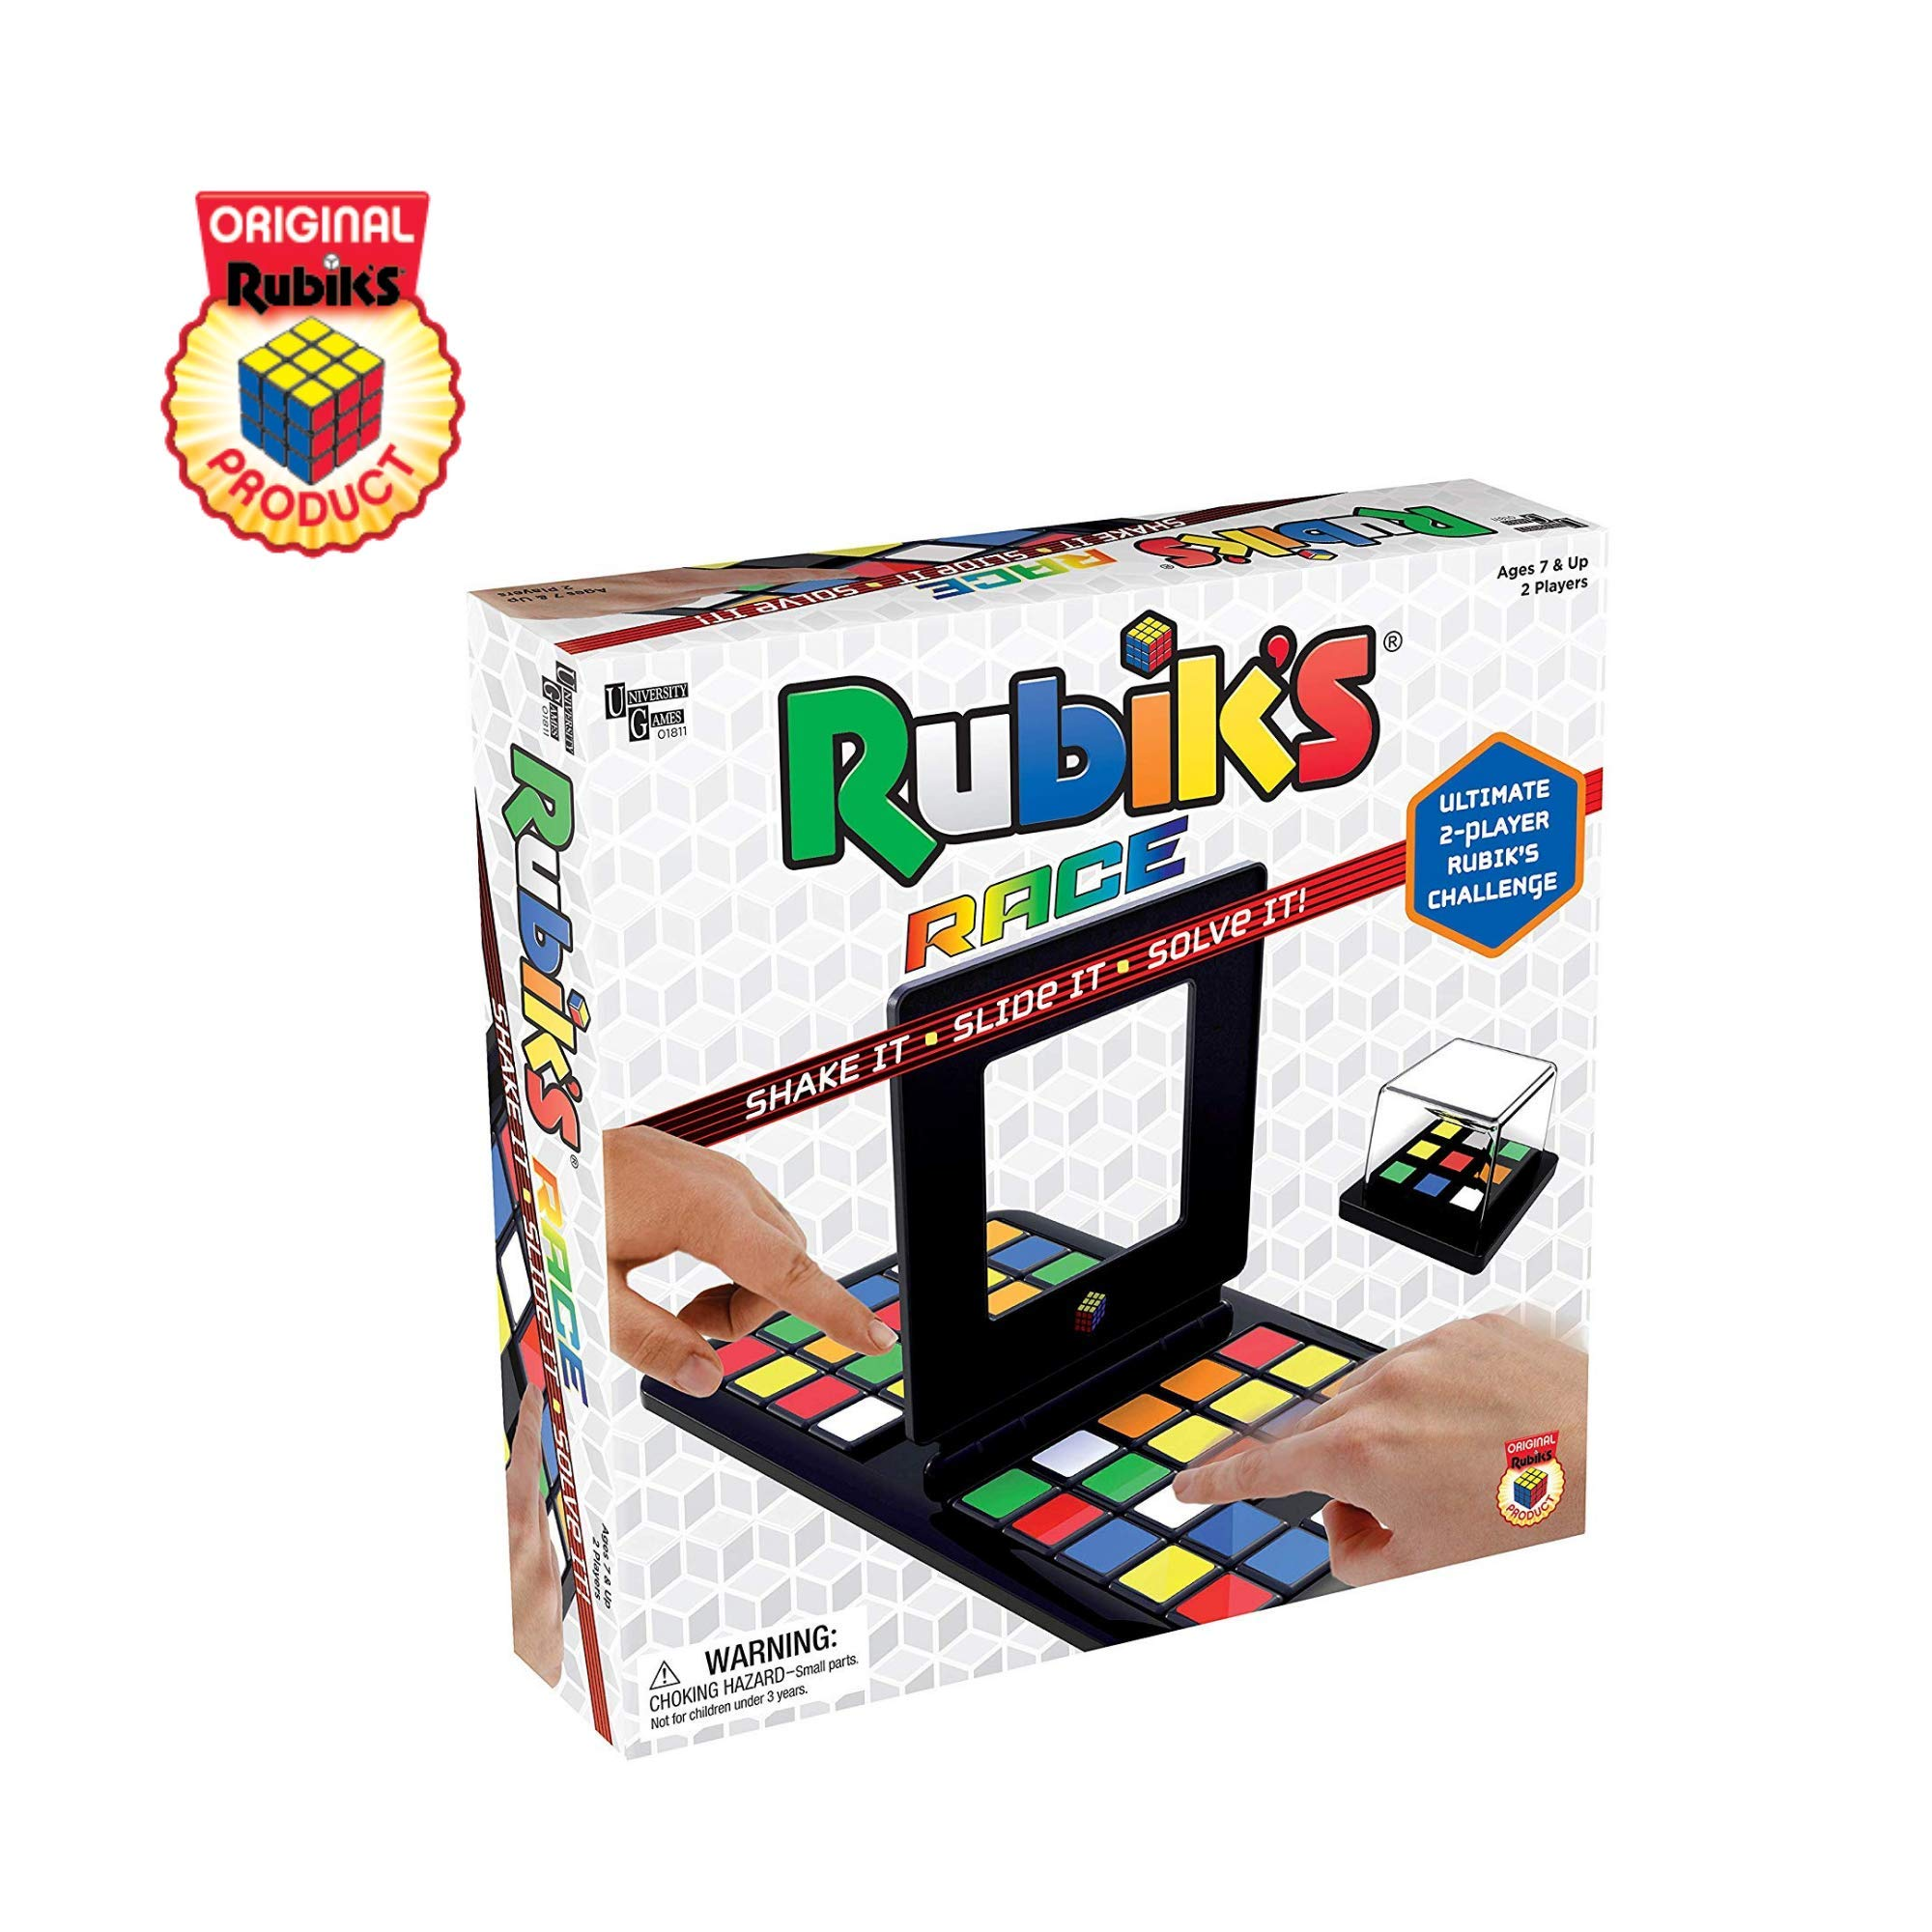 Rubik's Race Game, Head To Head Fast Paced Tile Shifting Board Game Based On The Rubiks Cubeboard, for Family, Adults and Kids Ages 7 and Up by University Games